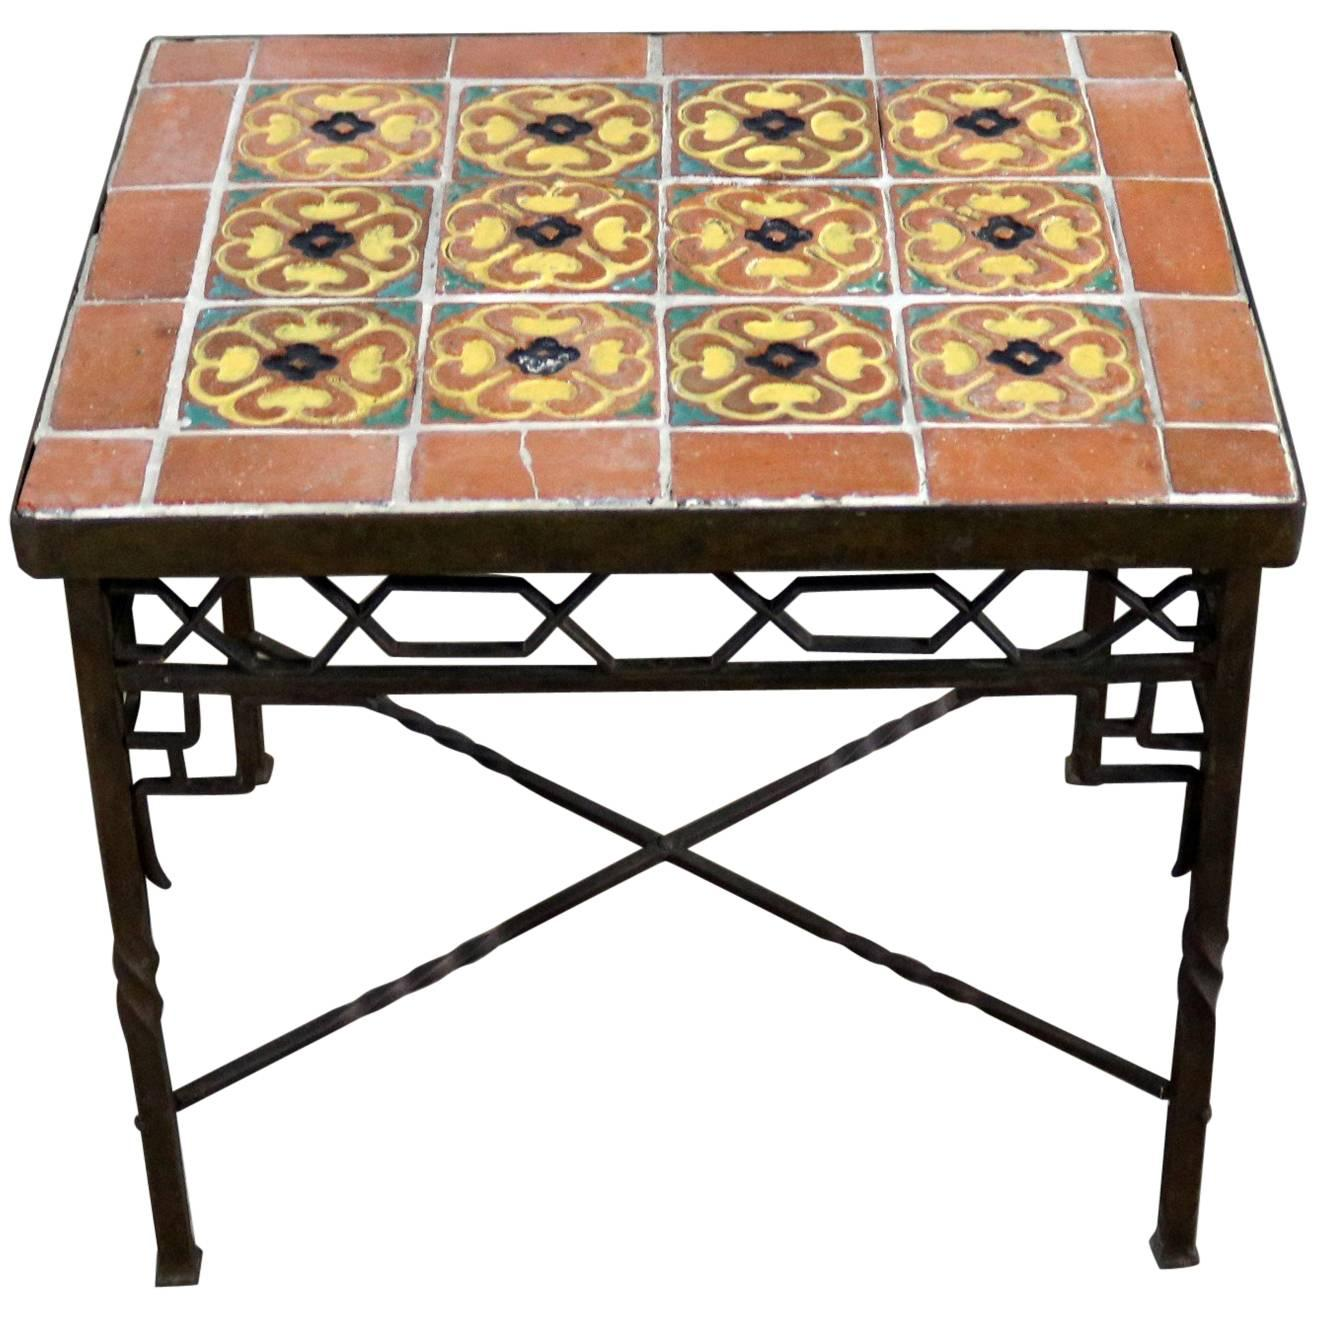 Art Deco Wrought Iron And Tile Side Table California Style Tiles For Sale